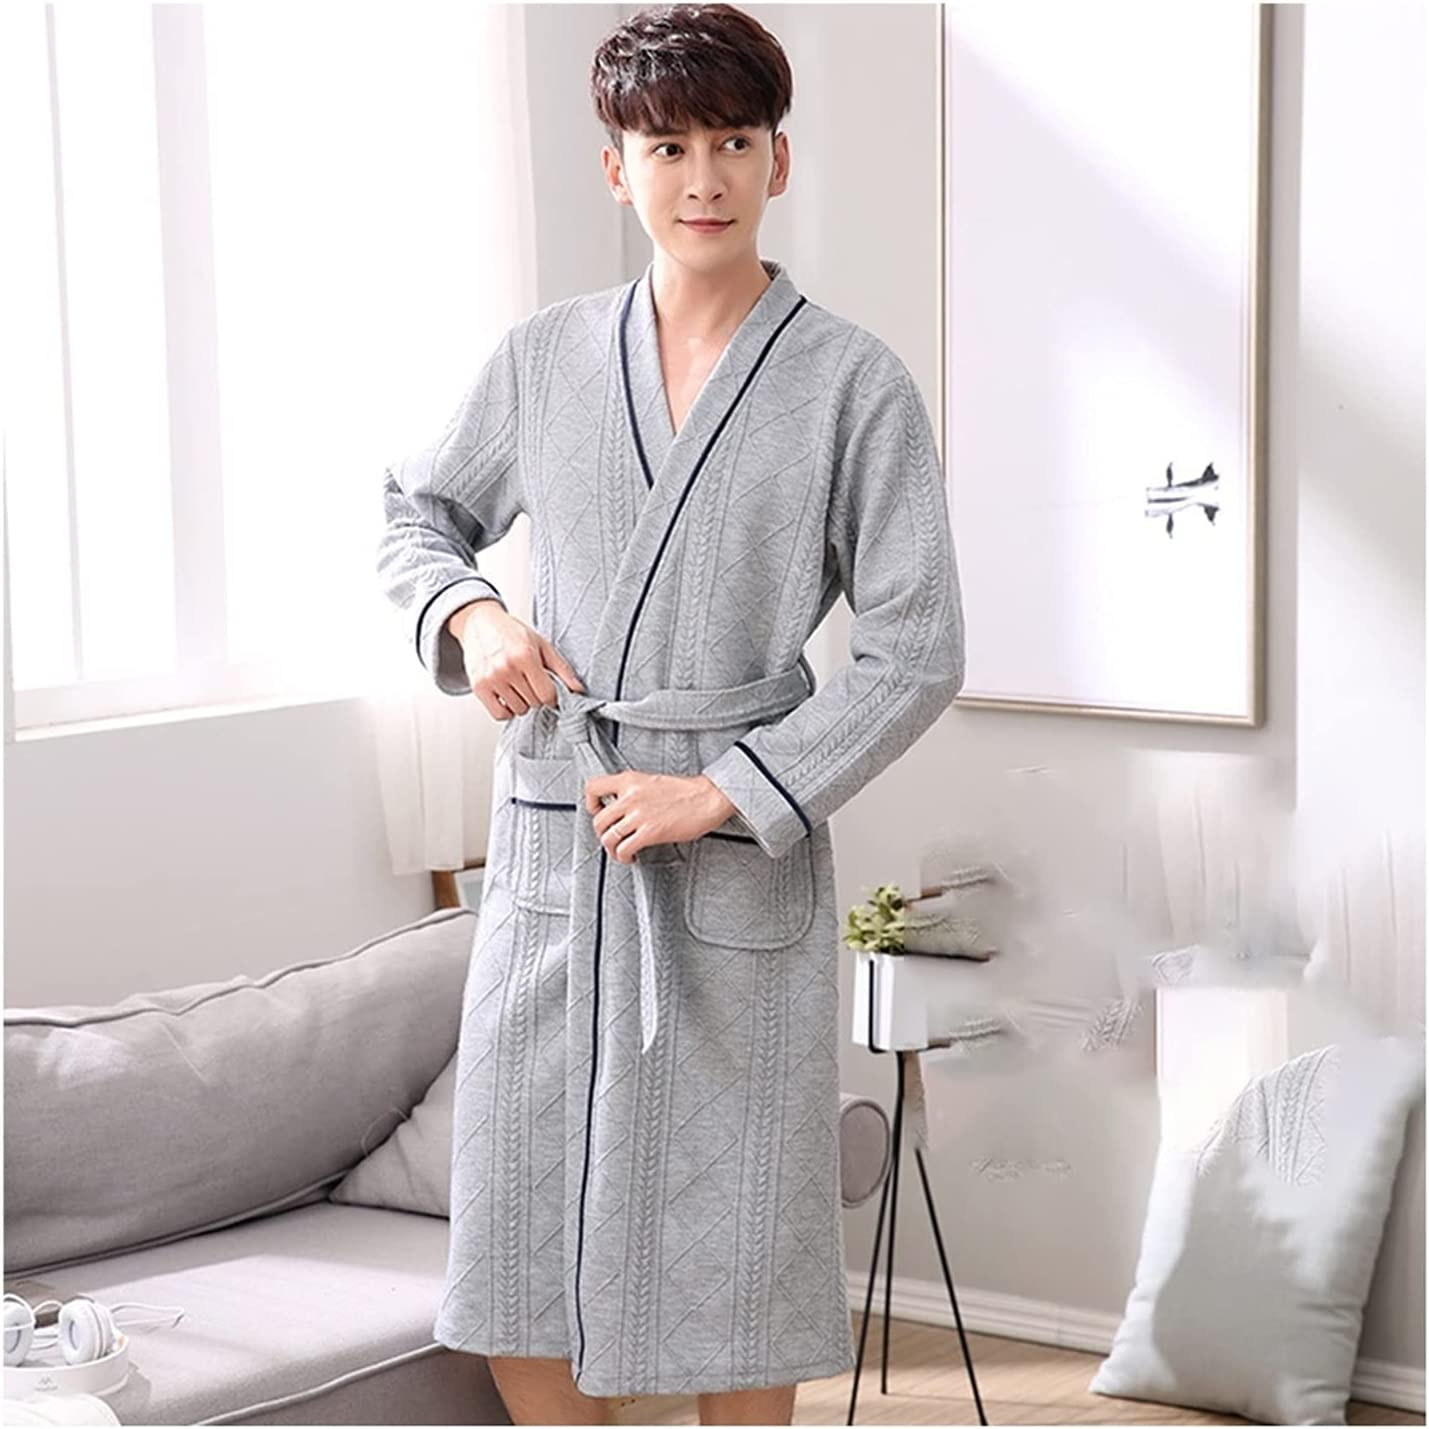 Bathrobe for Men Cotton,Couple Nightgown Thickened Long Absorbentpur Sexy Sandwich Plus Size Nightgown (Color : Gray, Size : 3XL)